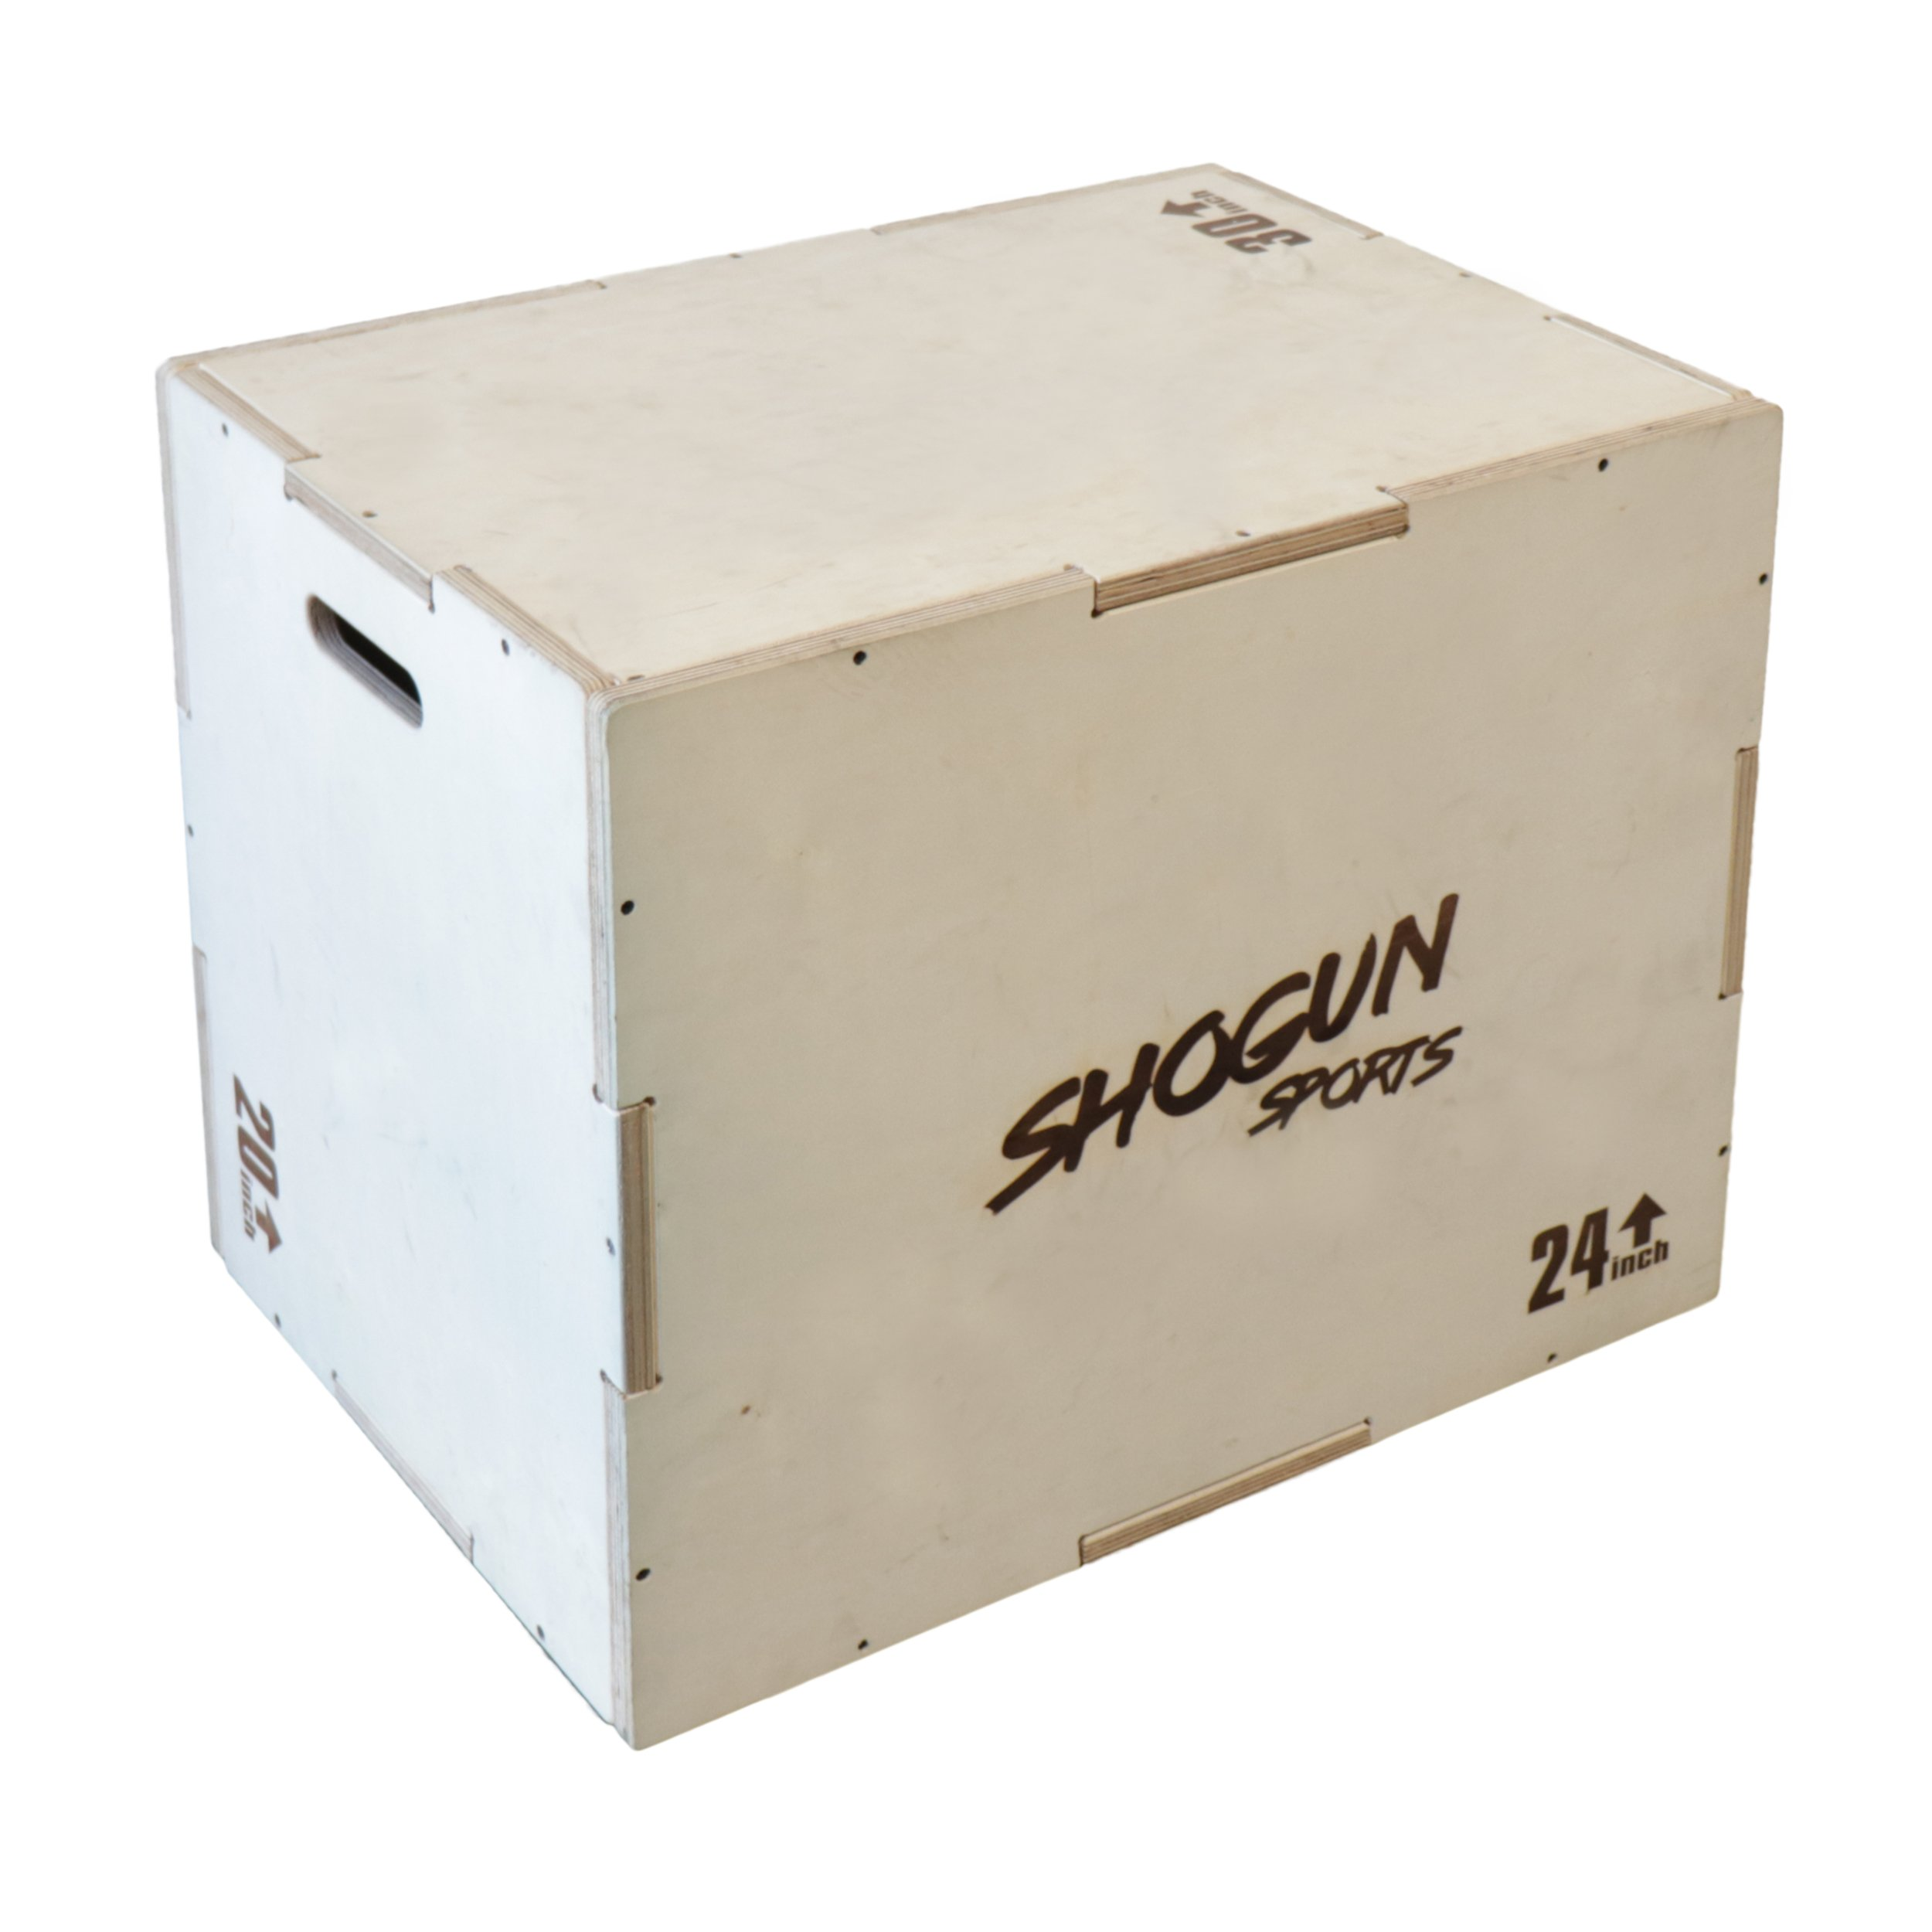 Shogun Sports 3 in 1 Wood Plyometric Box. Jump Box for Crossfit, MMA Conditioning and Strength Training. Available in 4 Sizes (30/24/20-24/20/16-20/18/16-16/14/12) (20/24/30)